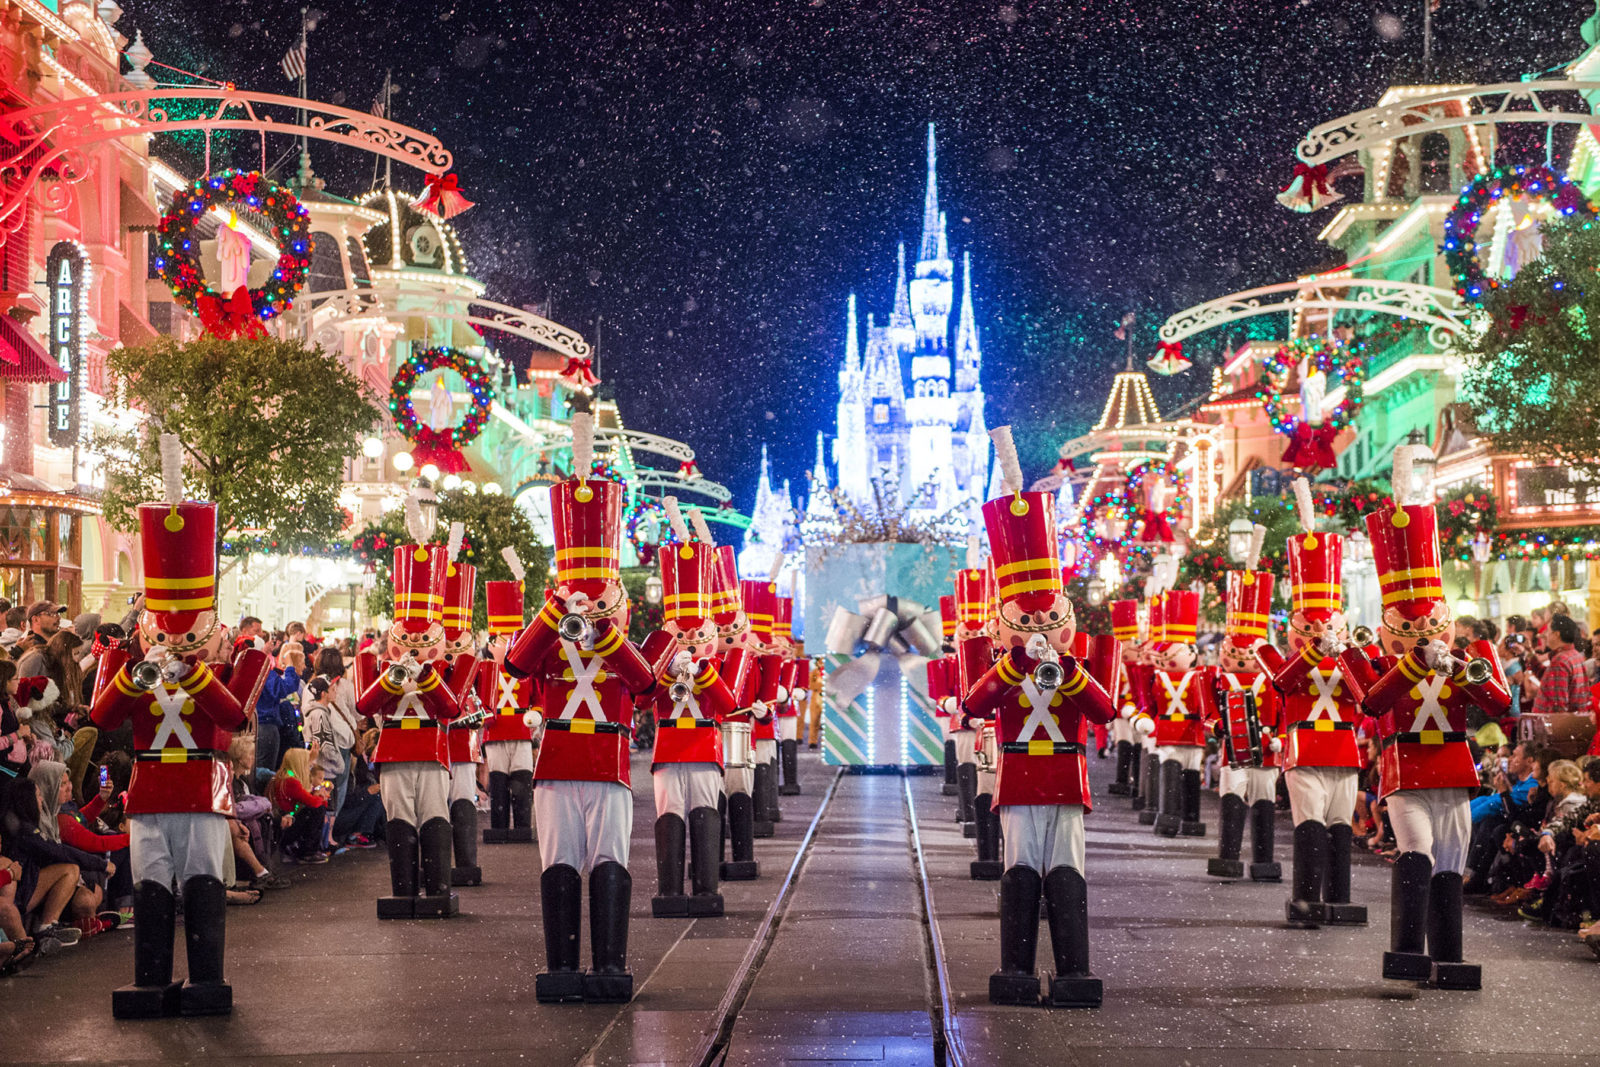 Christmas 2019 Walt Disney World Holidays 2019 Christmas in July Mickey's Very Merry Christmas Party 2018